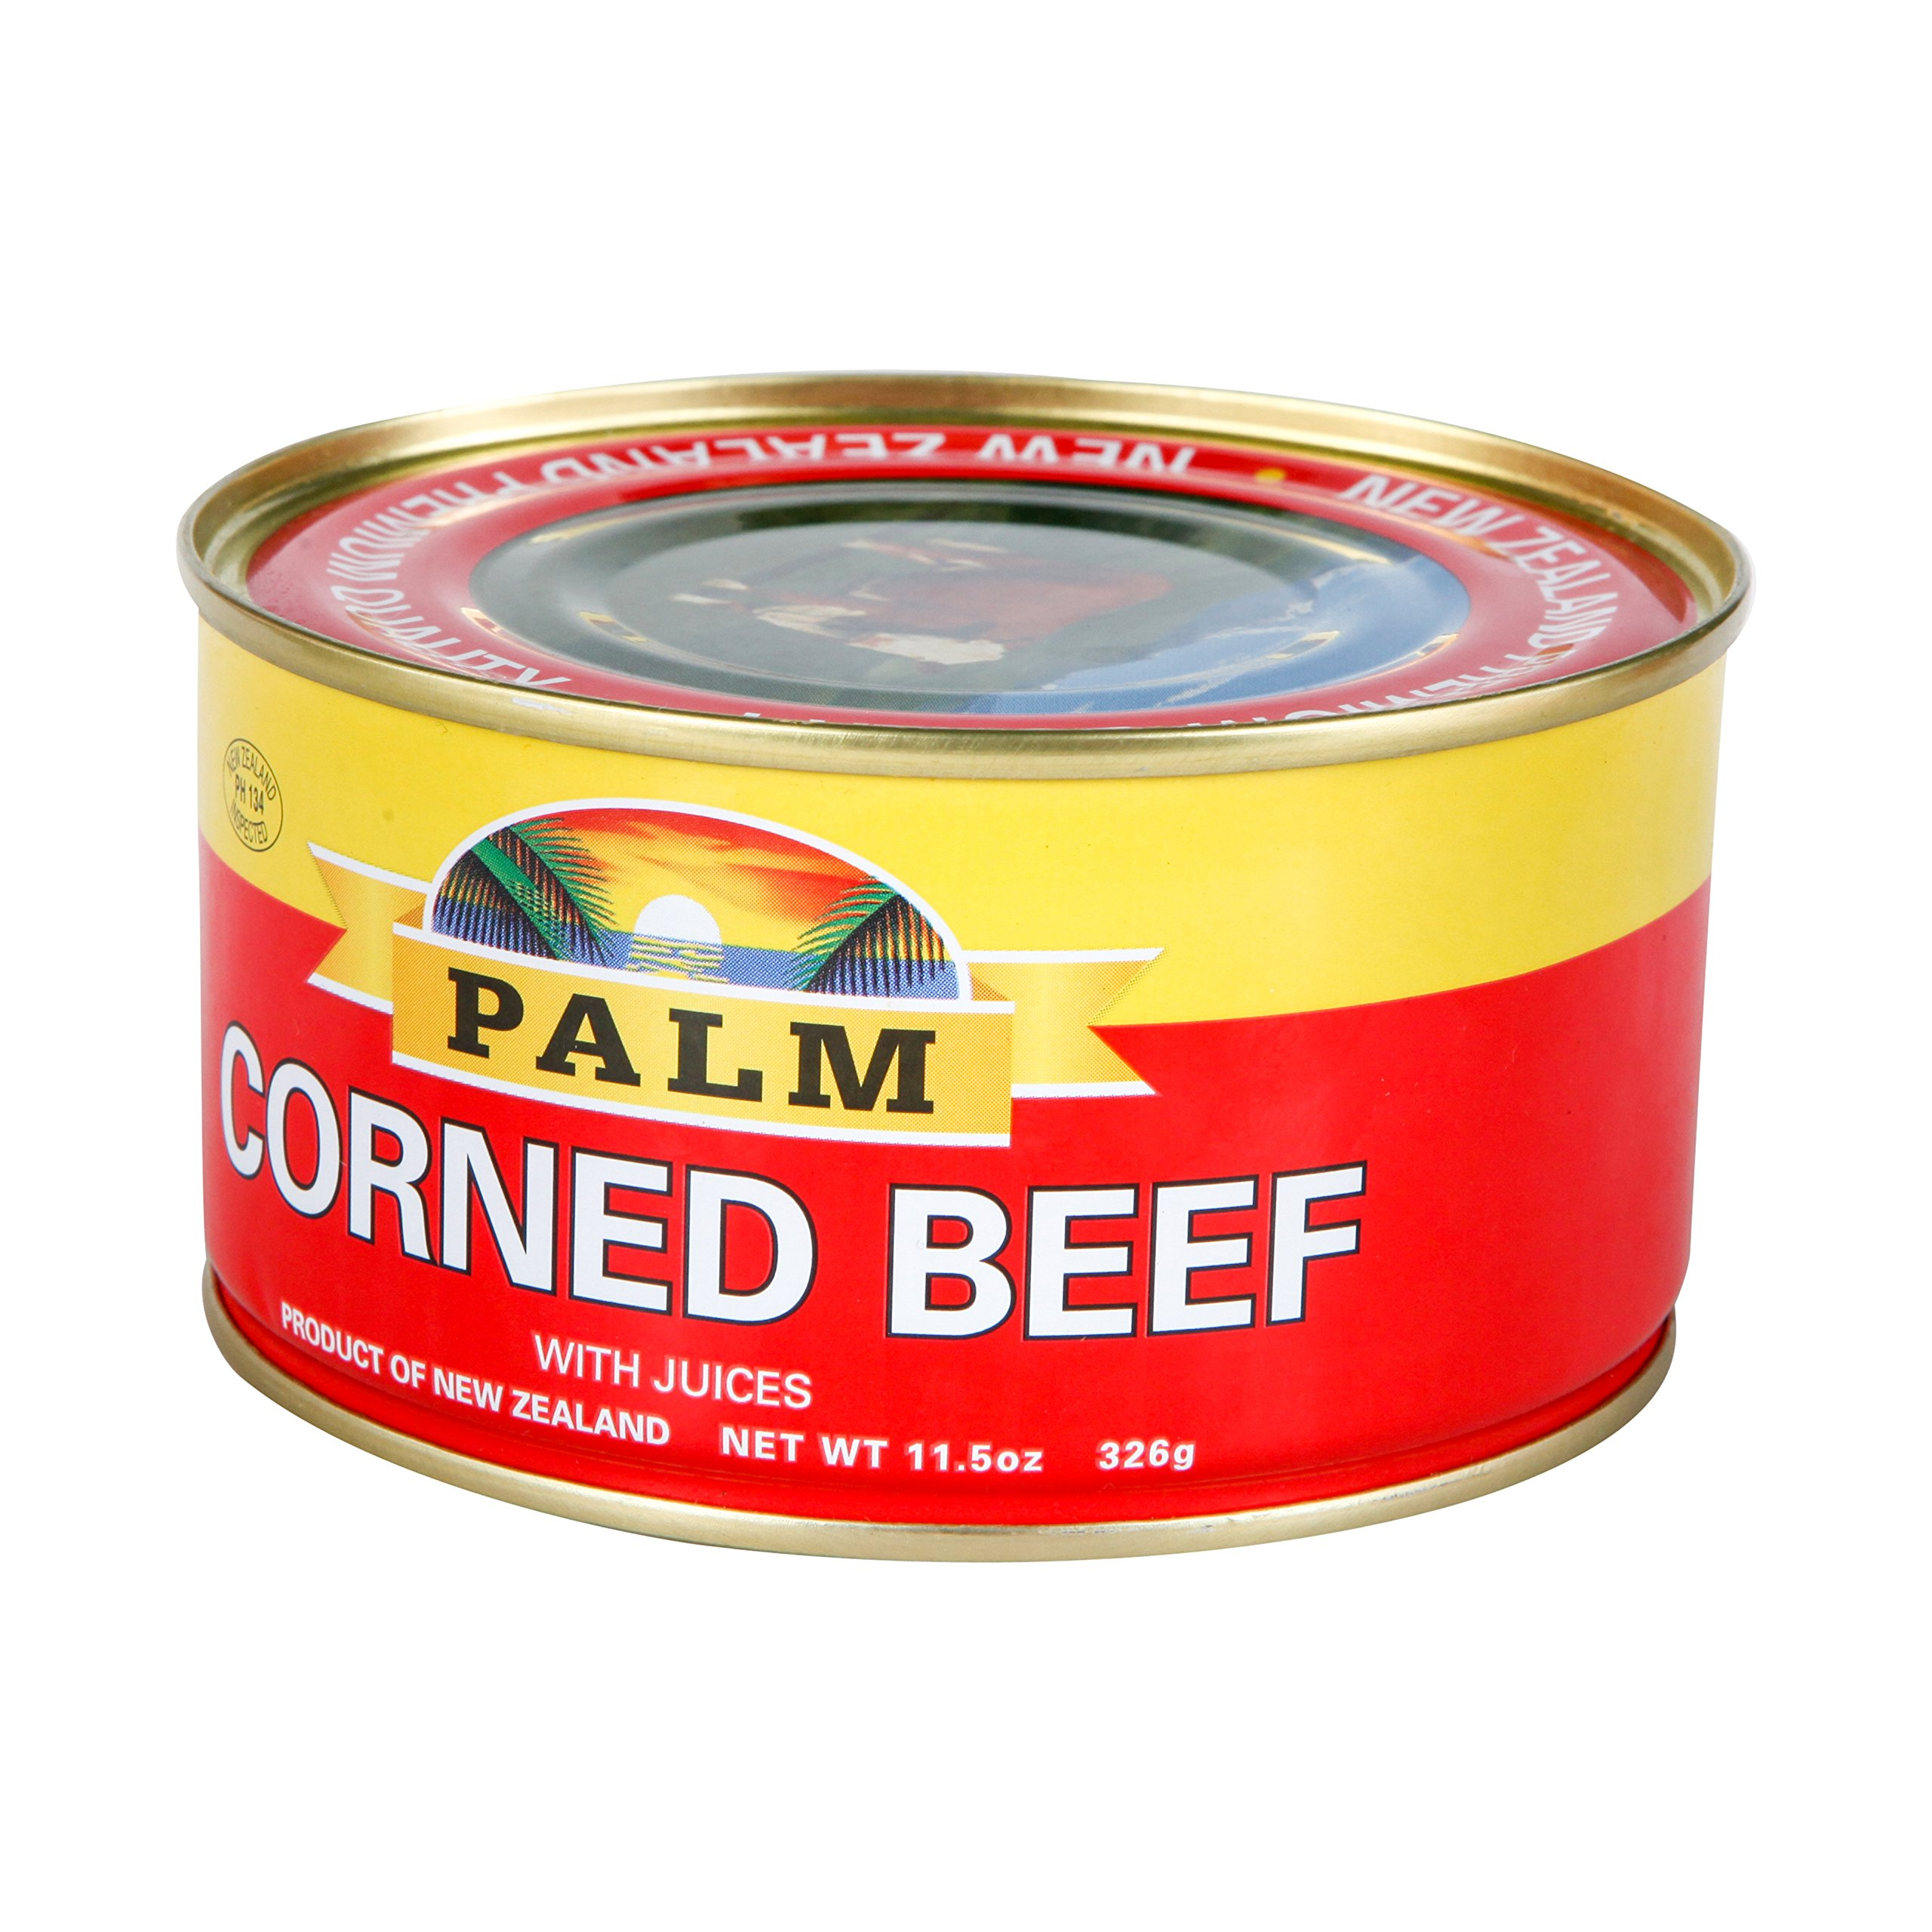 Palm Corned Beef, 11.5 oz